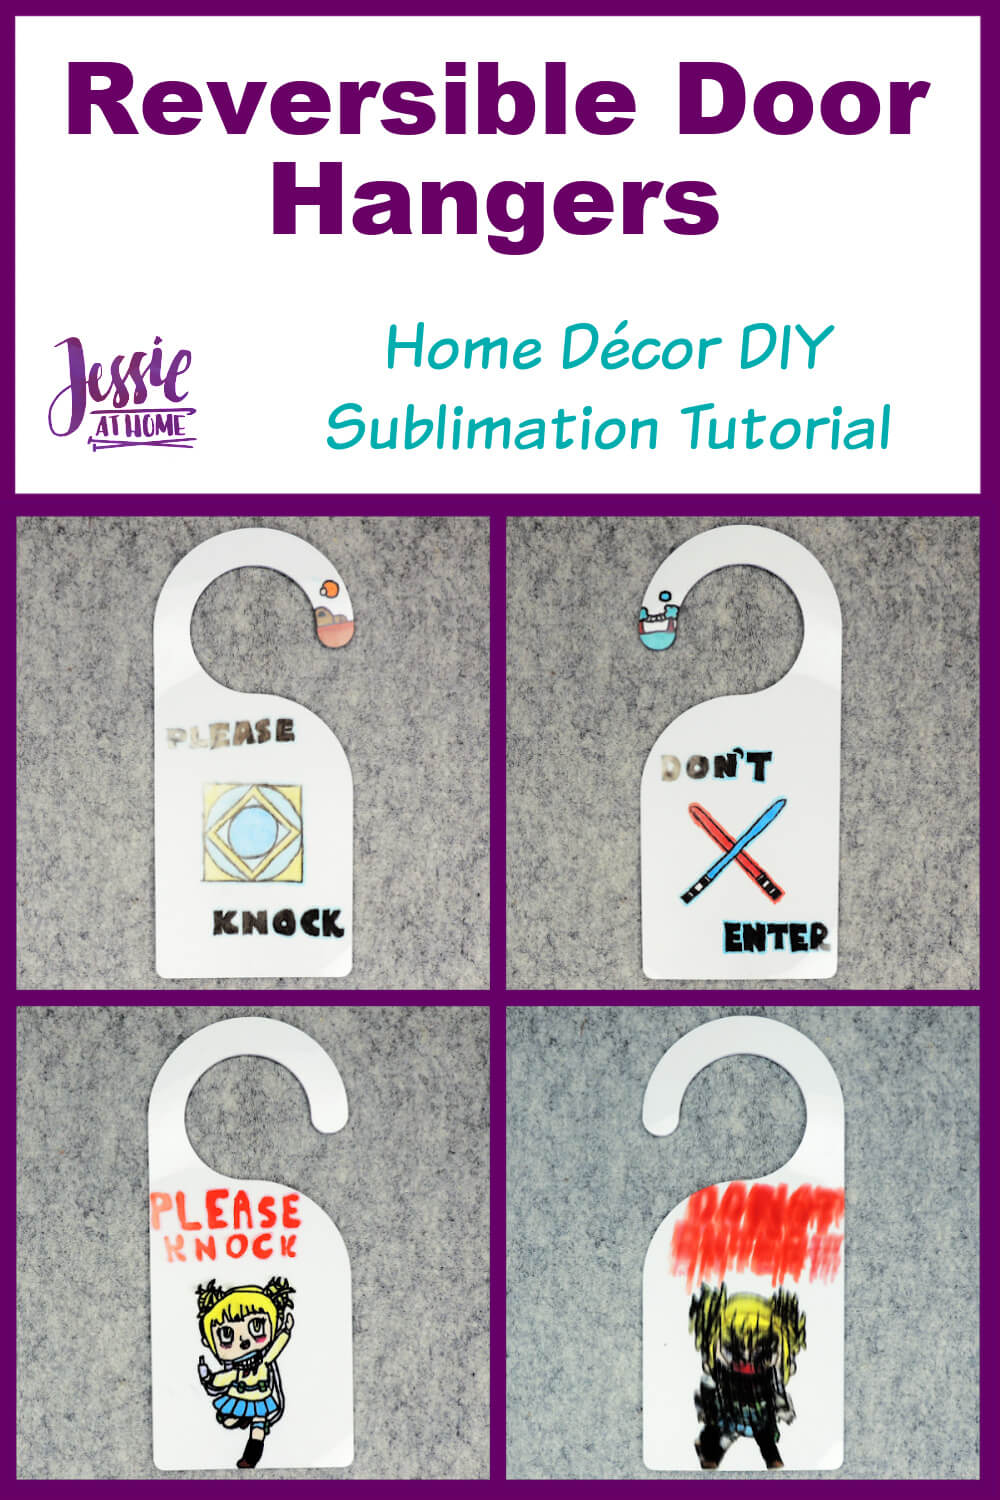 """Vertical Rectangle, at the top is a white block with text which reads """"reversible door hanger"""", home decor DIY sublimation tutorial"""", and """"Jessie At Home"""", beneath that is a purple square with 4 images, one each of the front and back of 2 finished door hangers."""